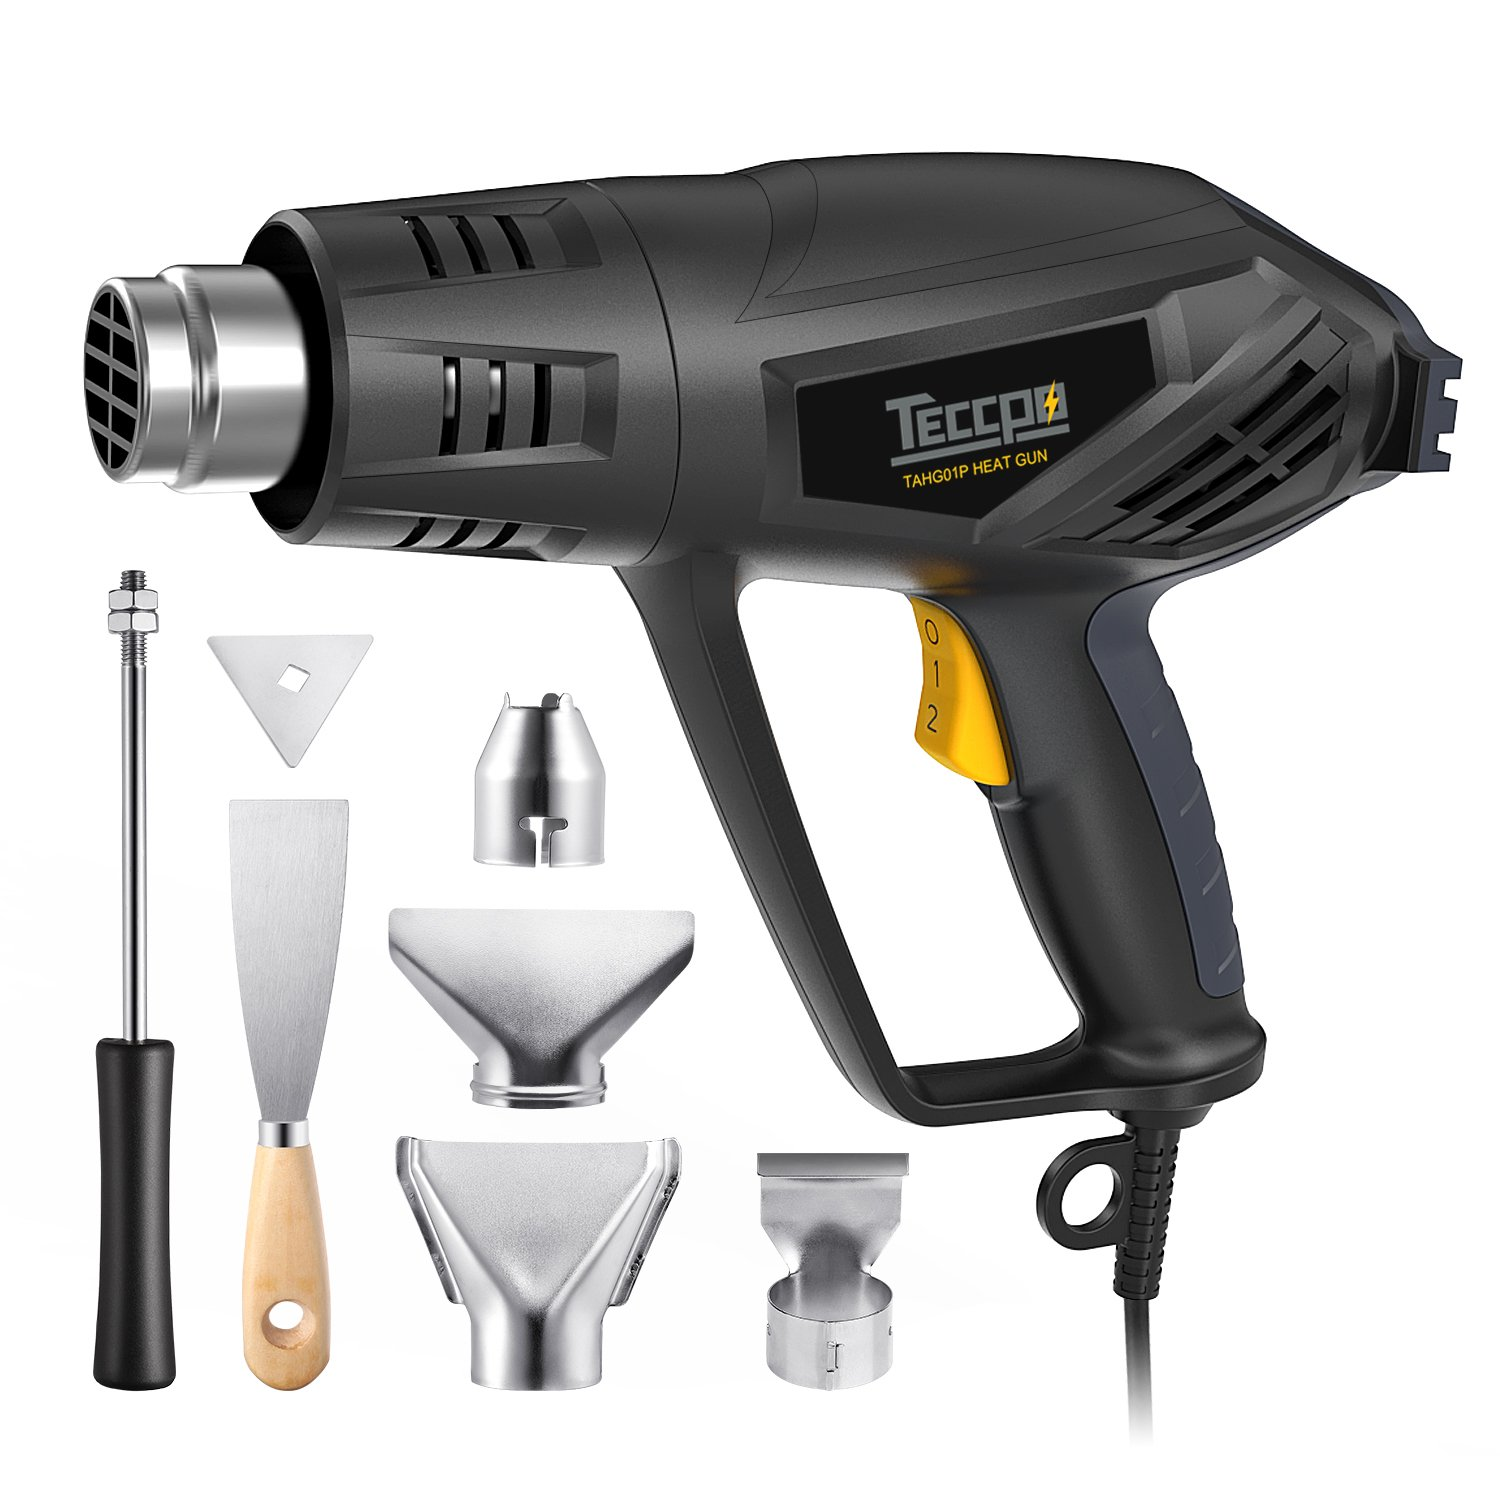 Heat Gun, TECCPO 1500W Electric Hot Air Gun with 3-Temp Mode 0℉~1022℉ for Crafts, Shrink Wrapping, Tubing and Paint Remover, 6 Stainless Steel Accessories Included